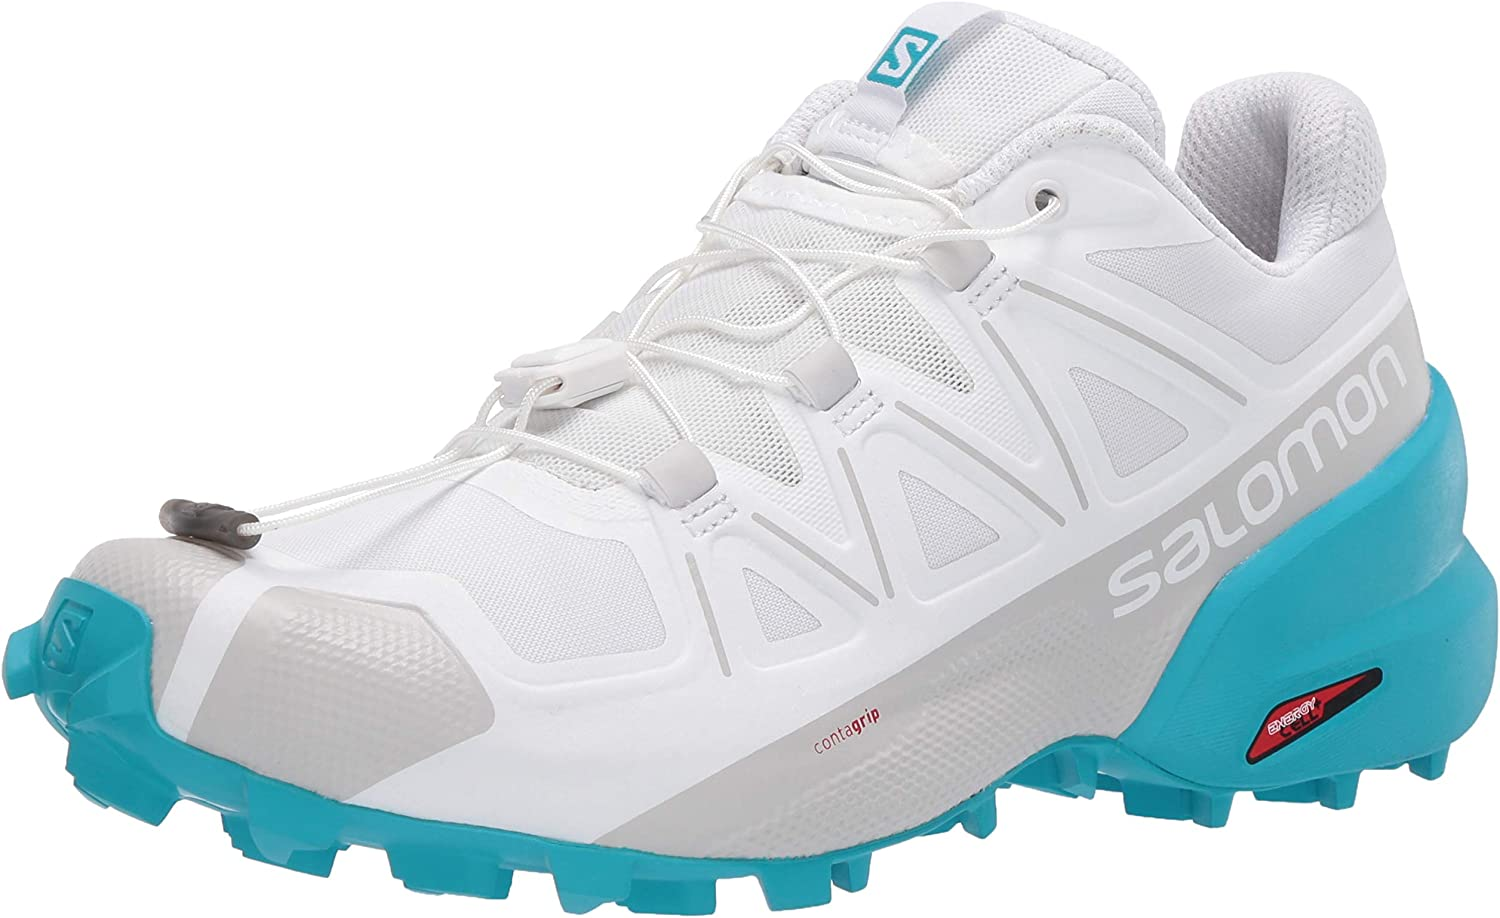 SALOMON Shoes Speedcross, Zapatillas de Running para Mujer: Amazon.es: Zapatos y complementos